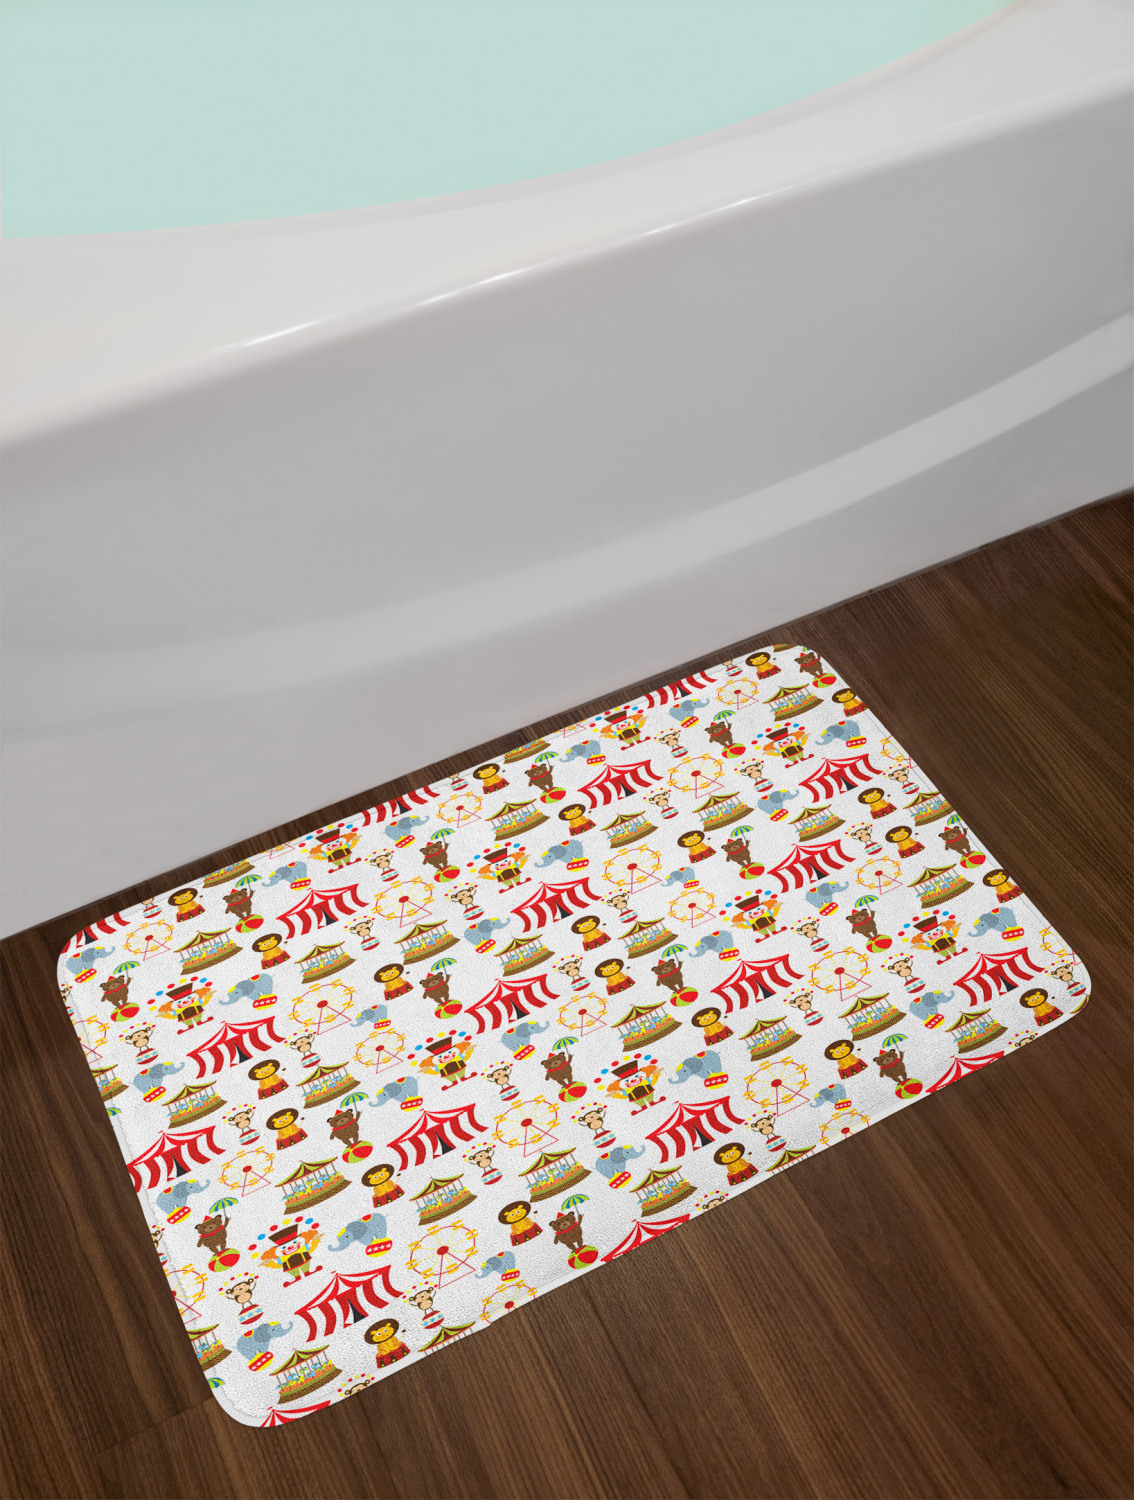 Colorful Circus Bath Mat Bathroom Home Decor Plush Non